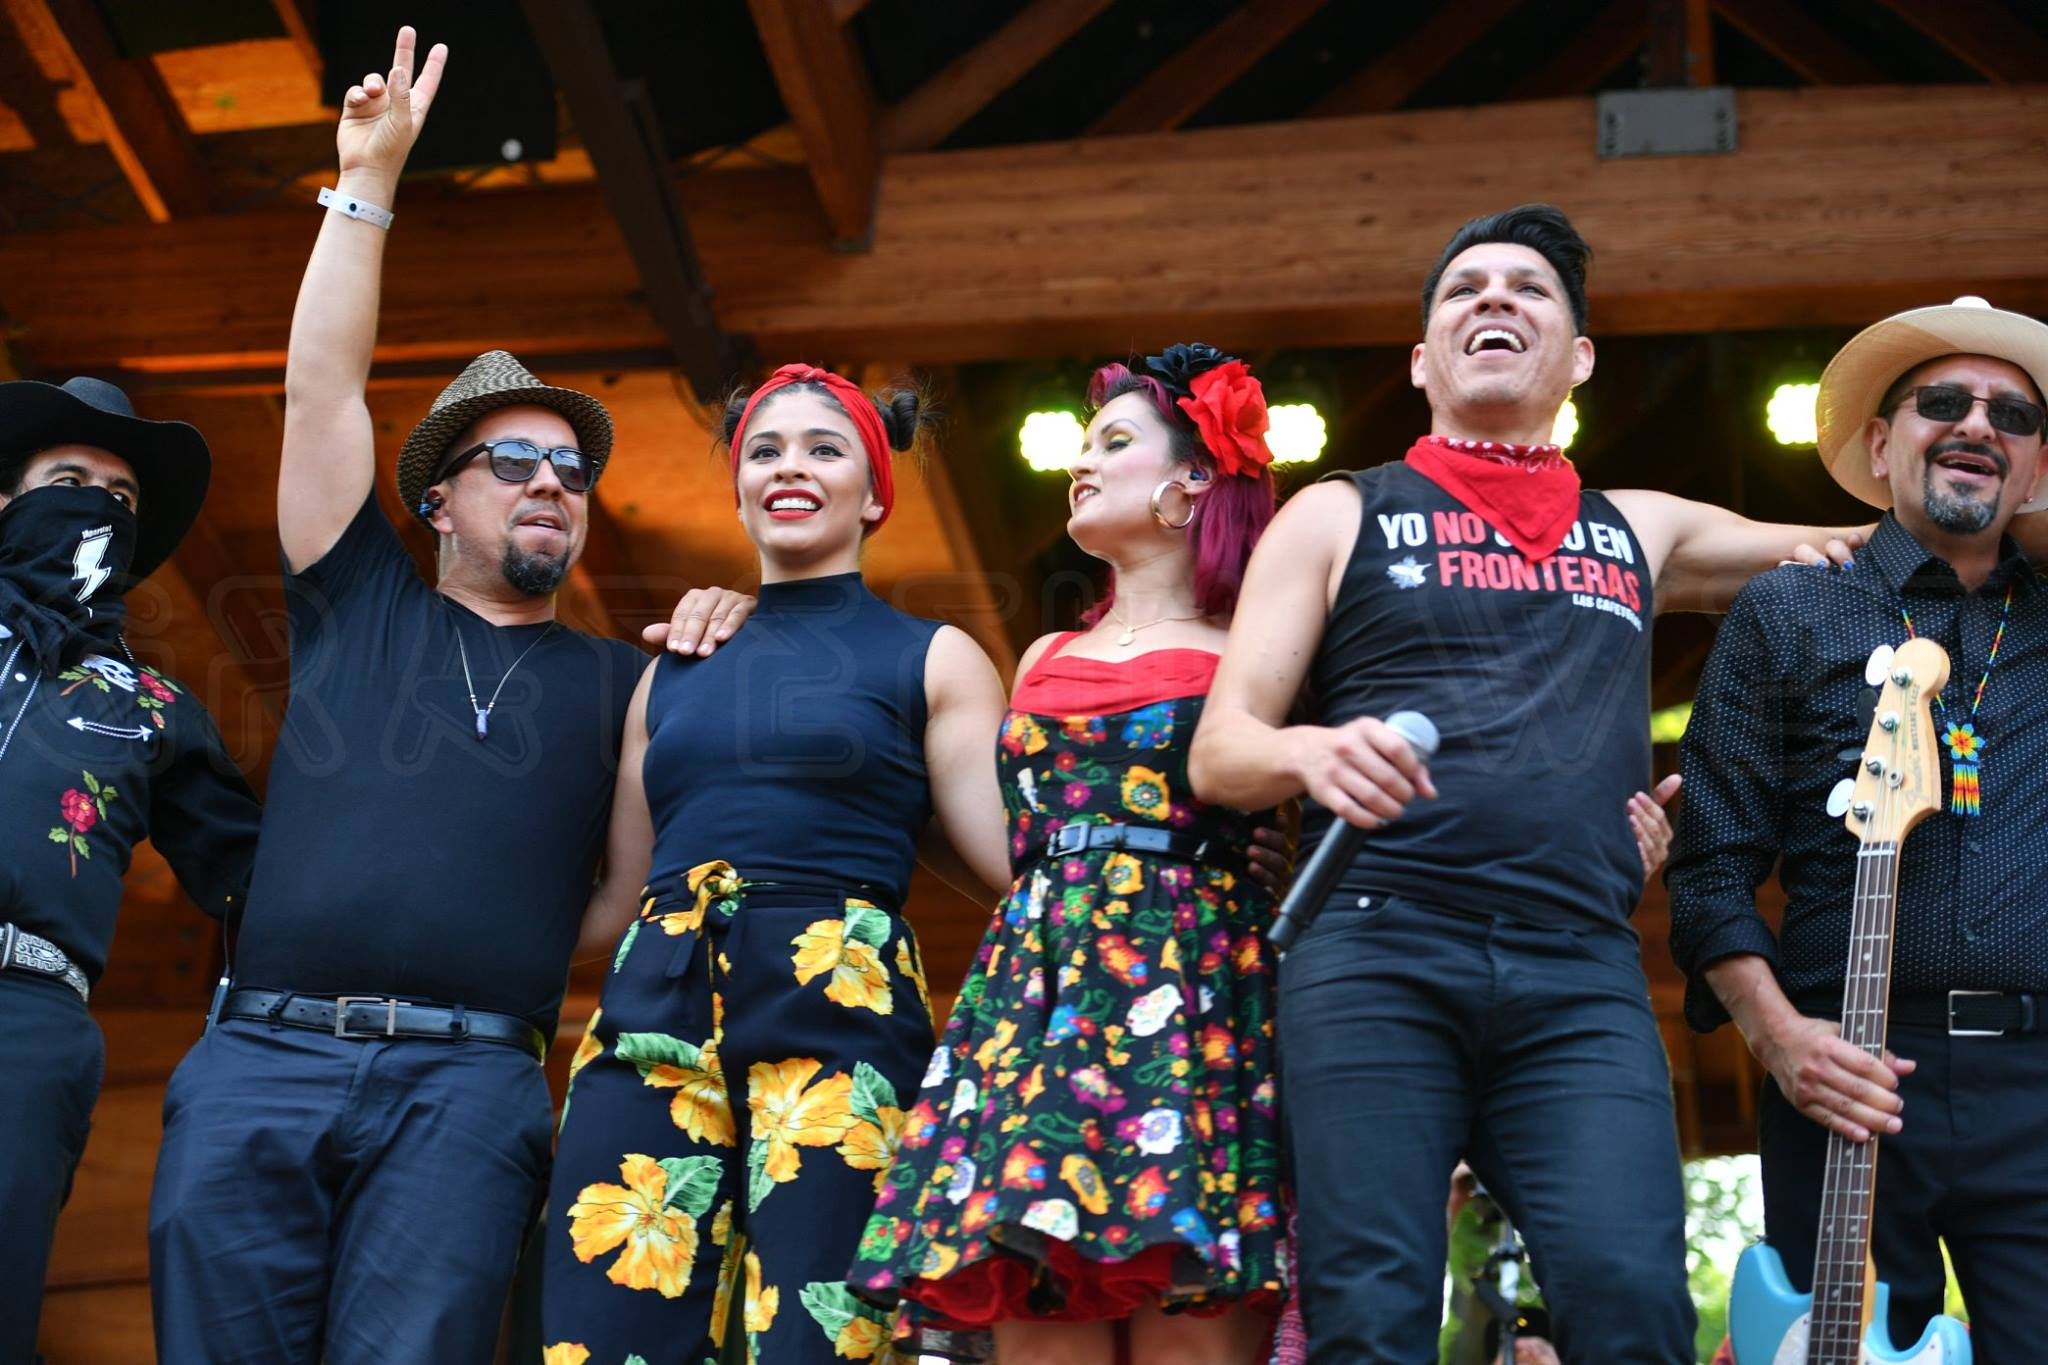 Las Cafeteras brought an important message and delightful music to Folks Fest 2018